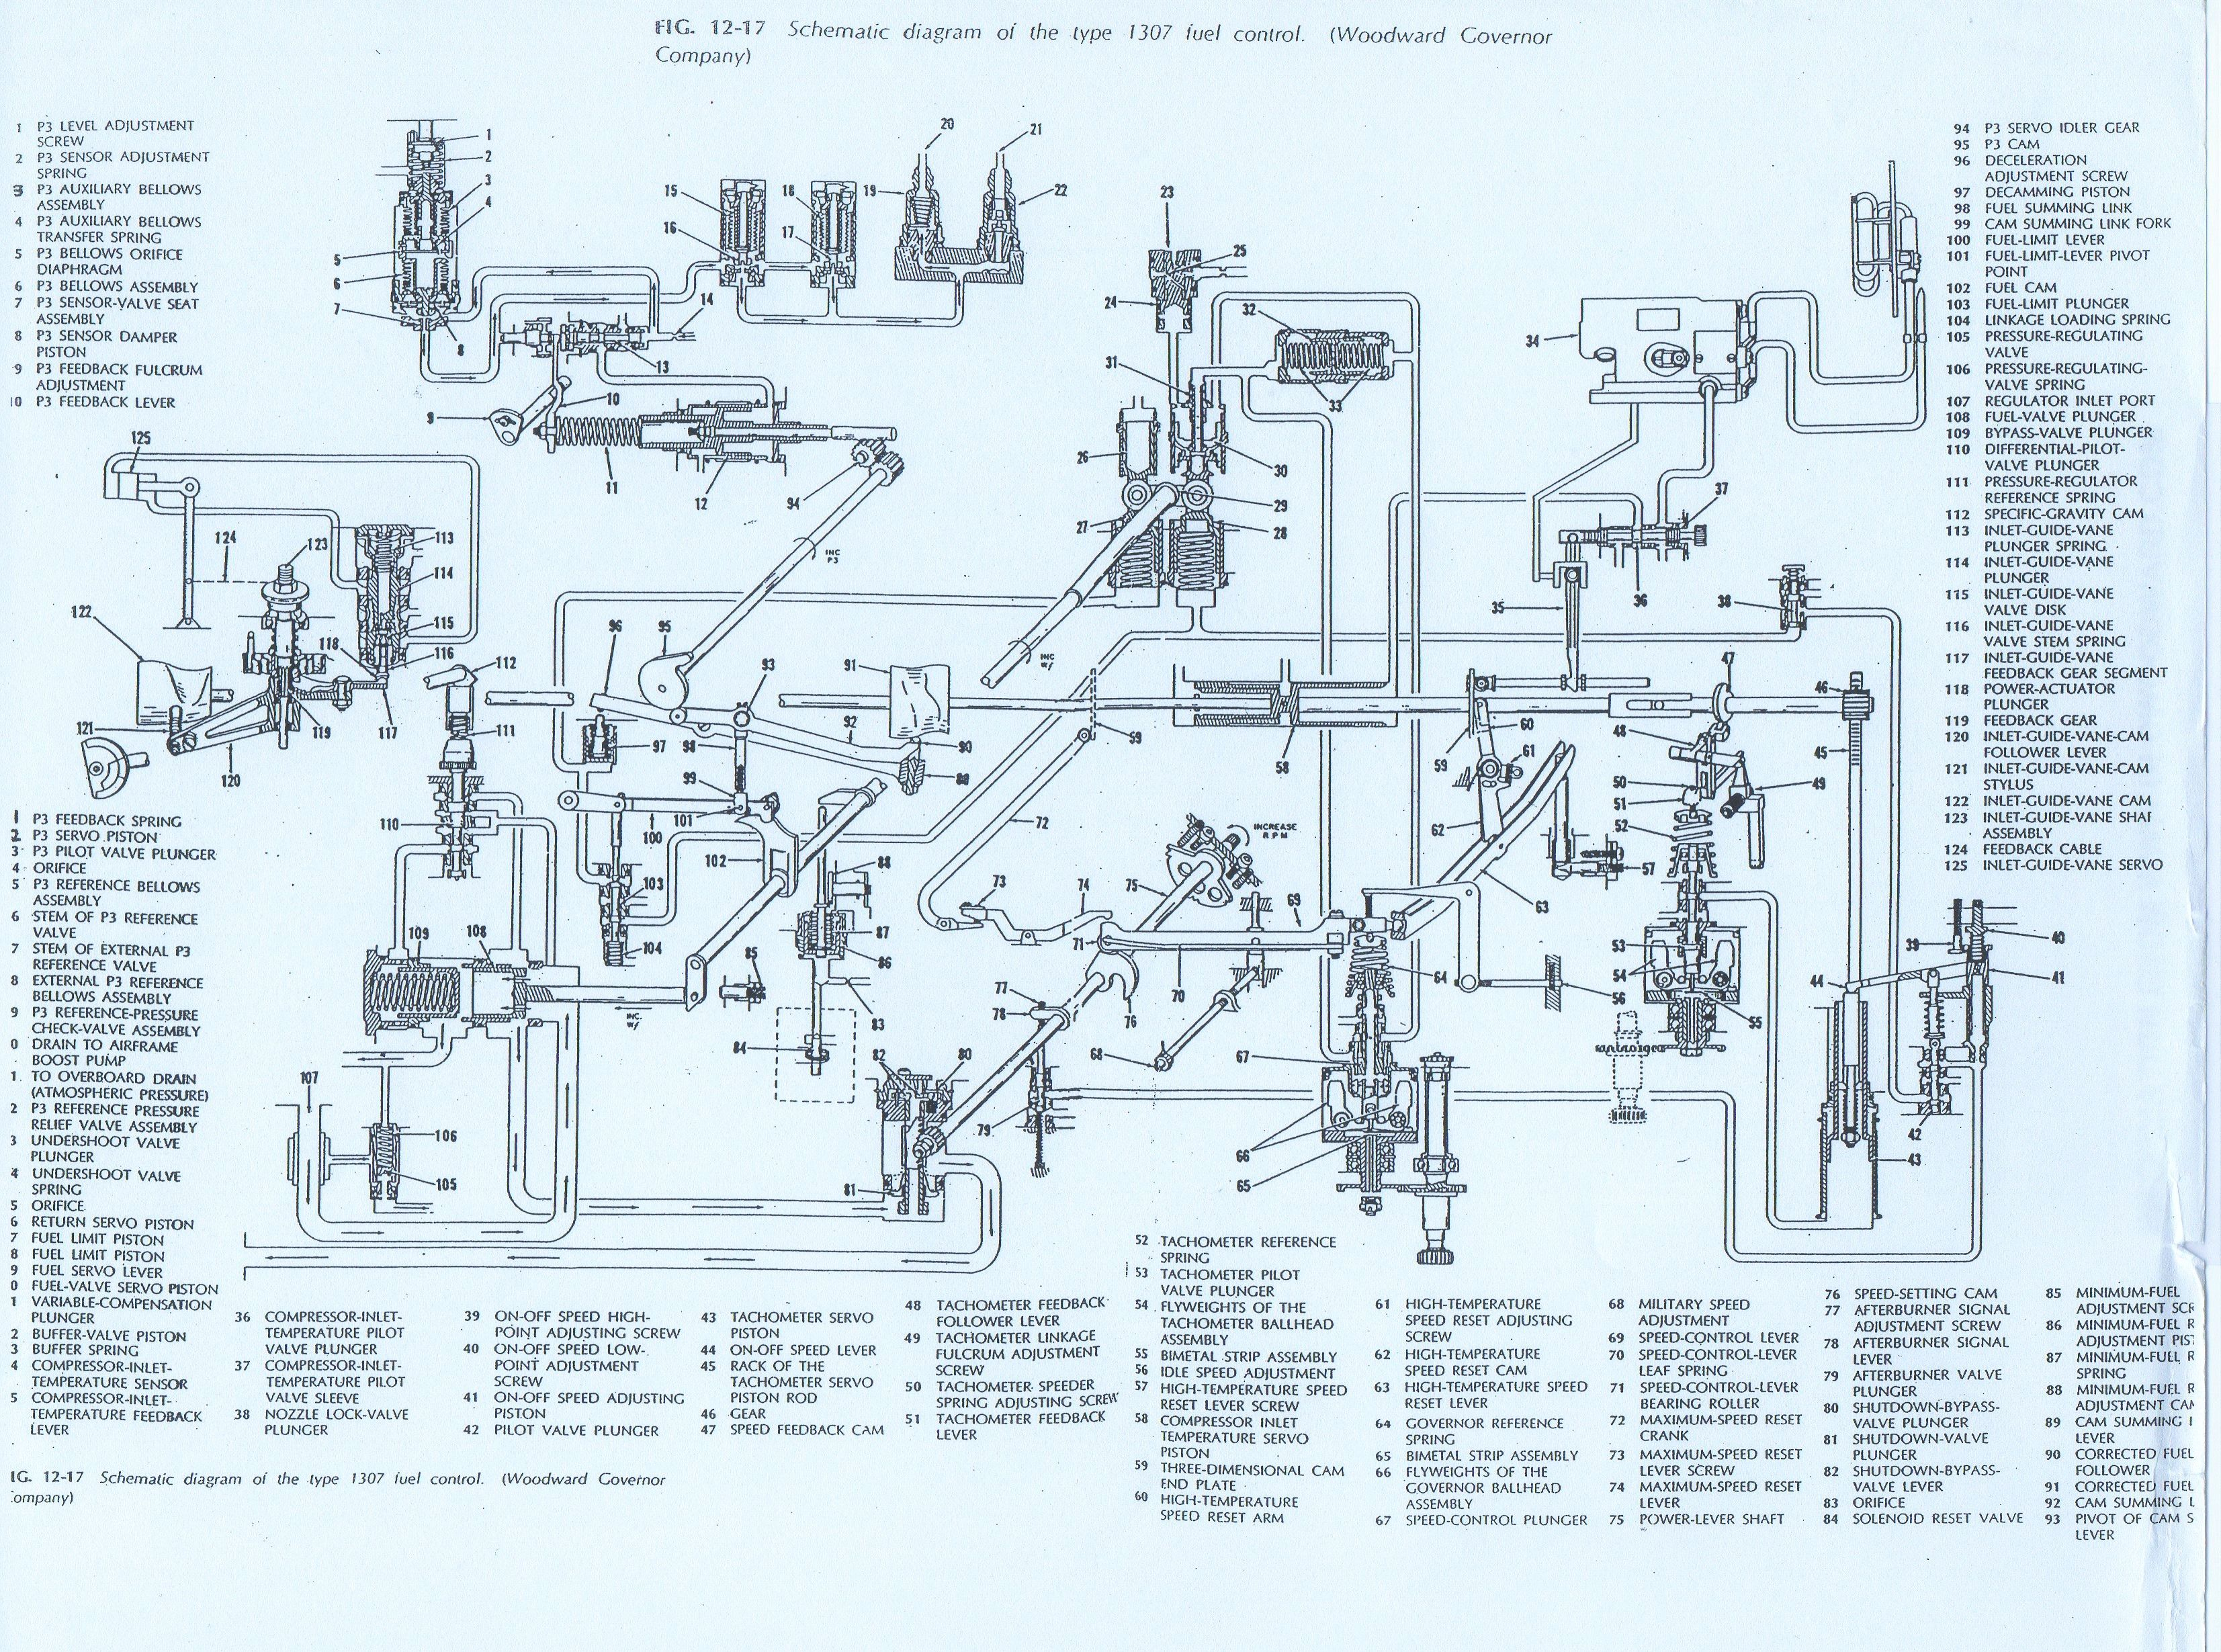 Woodward Governor Companys First Jet Engine Series 1307 Main Schematic Control From The 1950s